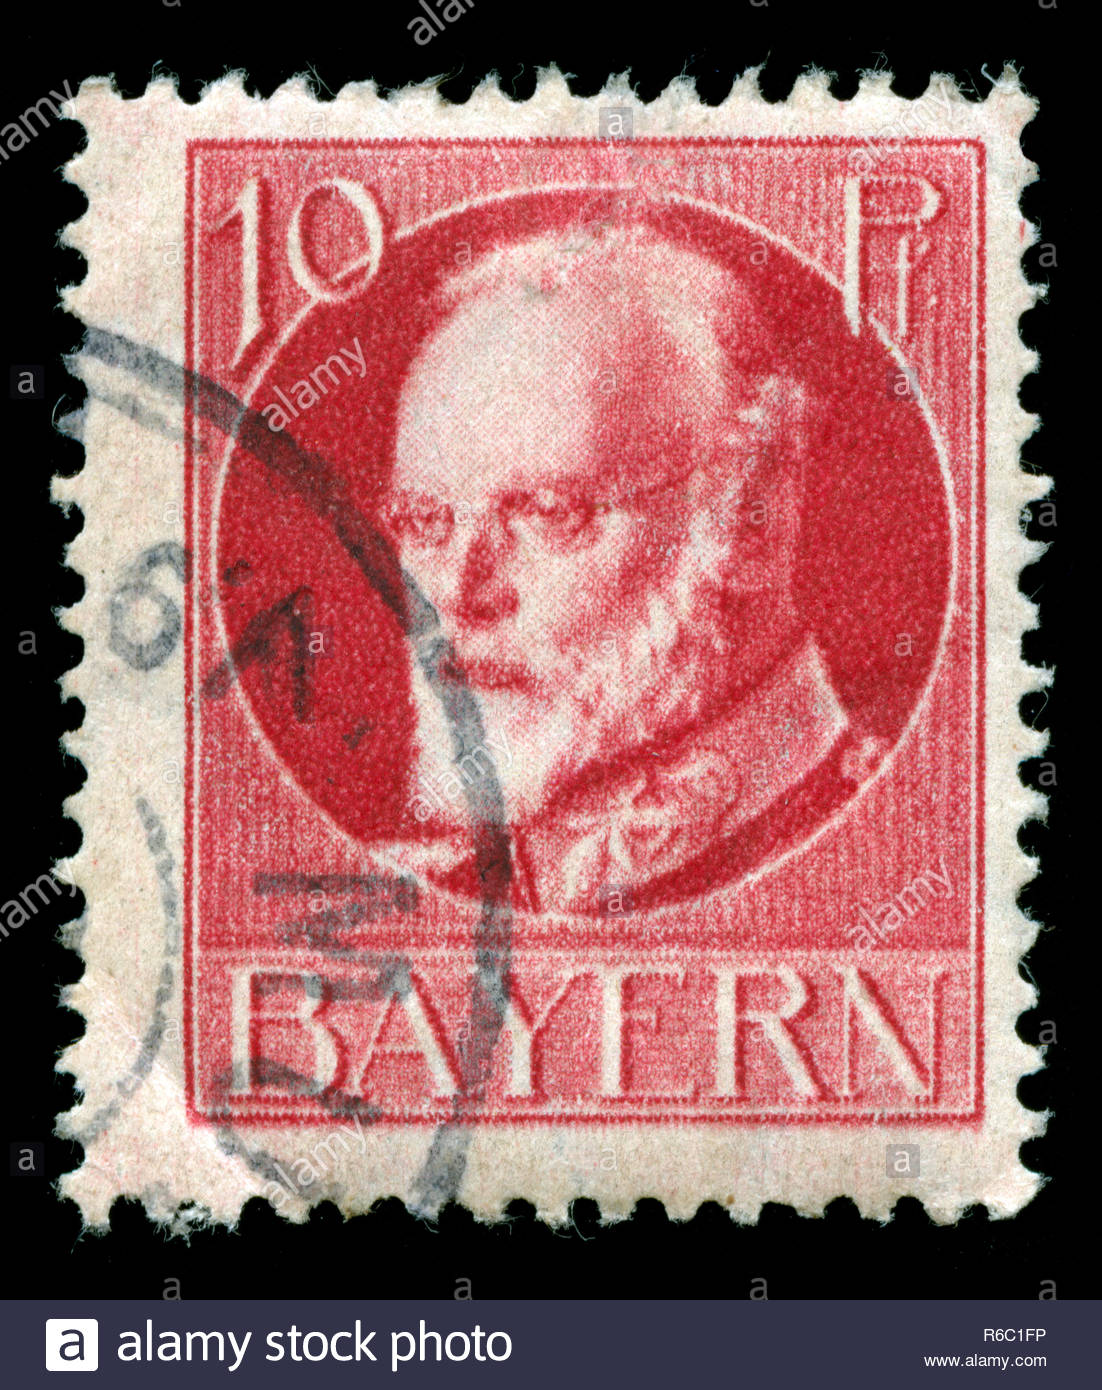 Postage stamp from the Kingdom of Bavaria in the Bavaria series - Stock Image